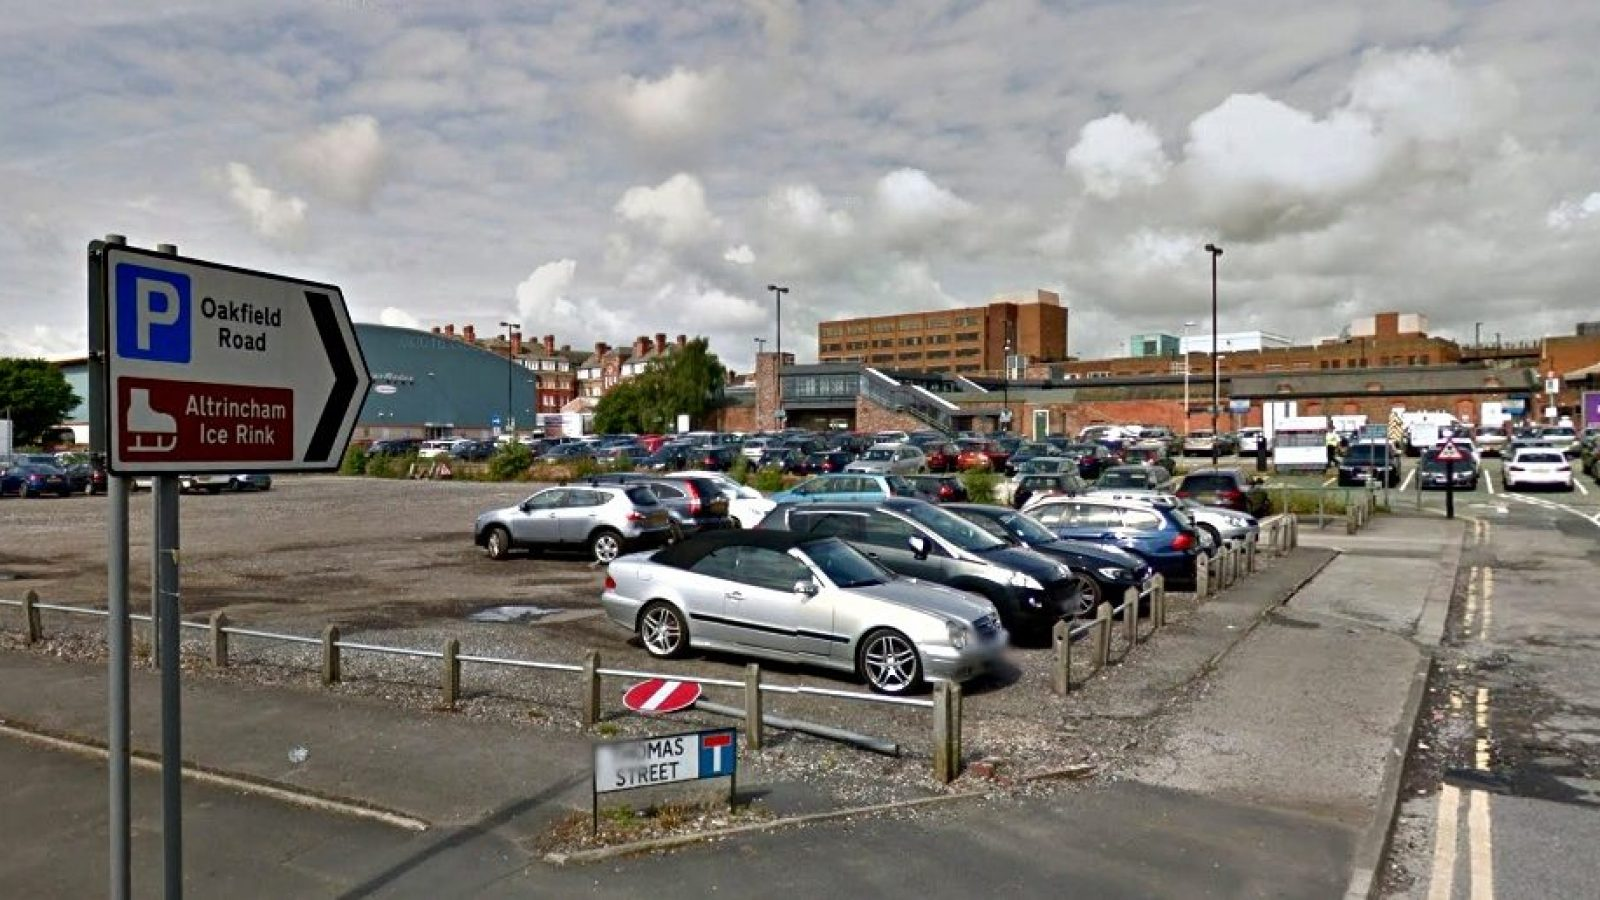 Oakfield Road car park as it is now